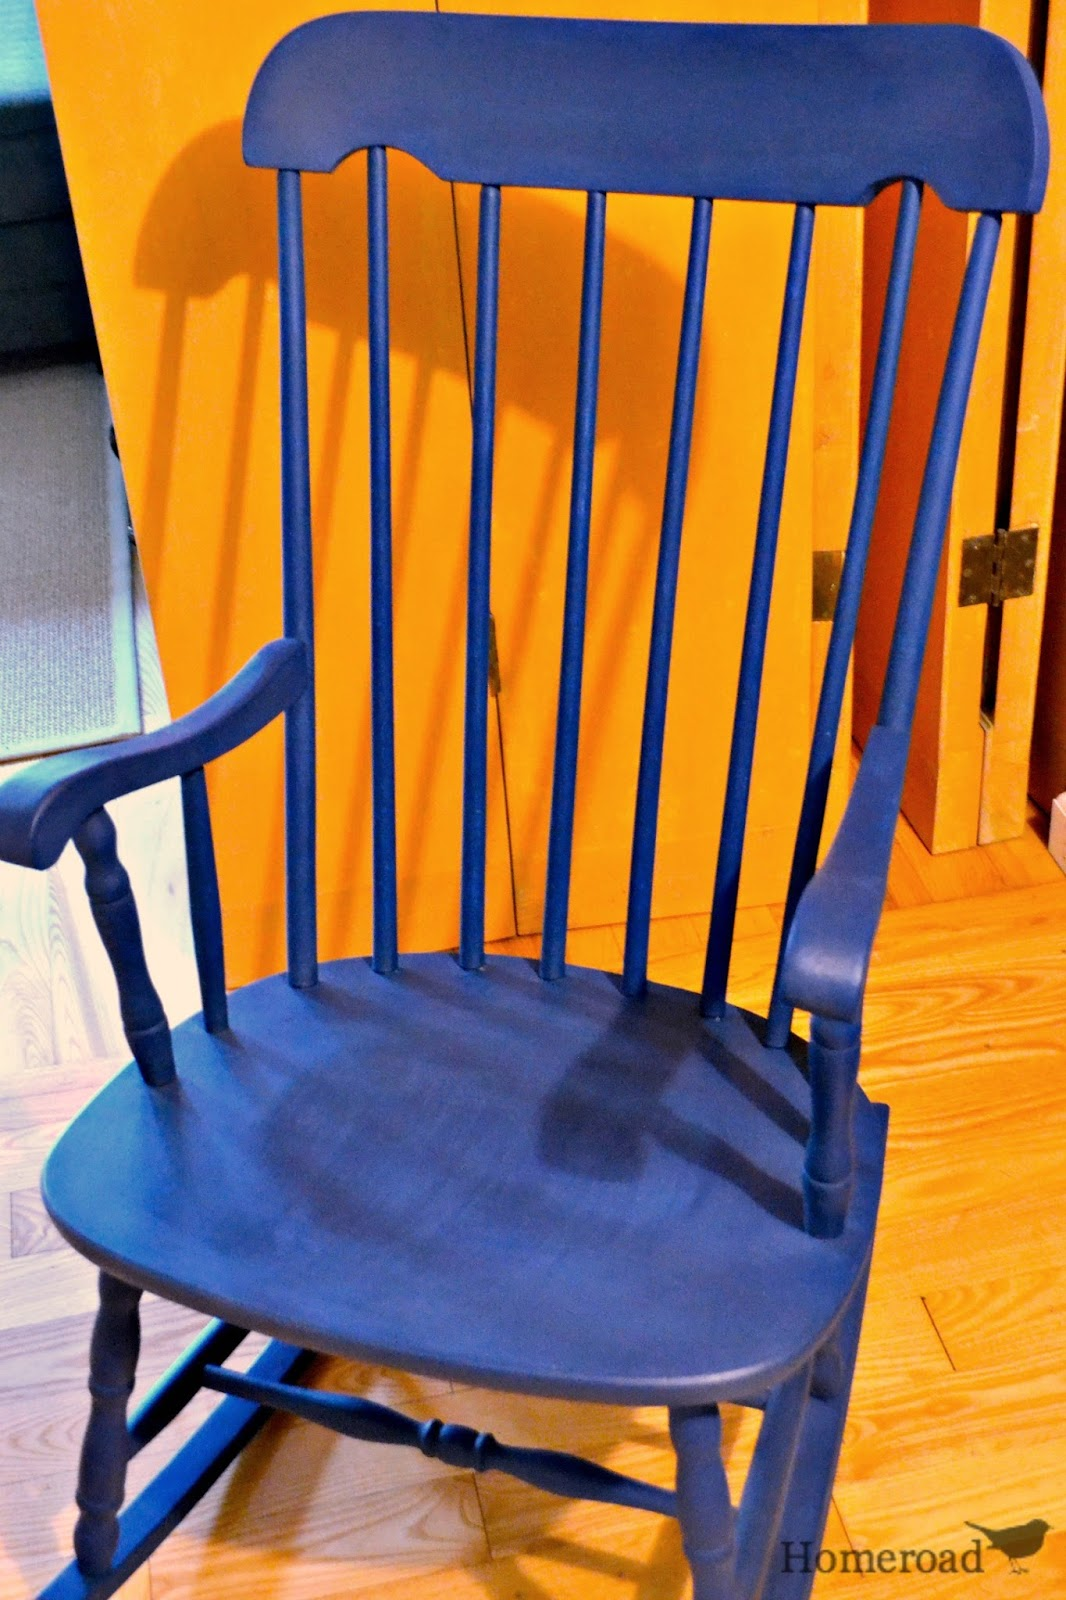 Navy Rocking Chair Armless Accent Chairs With Grain Sack Cushion Homeroad